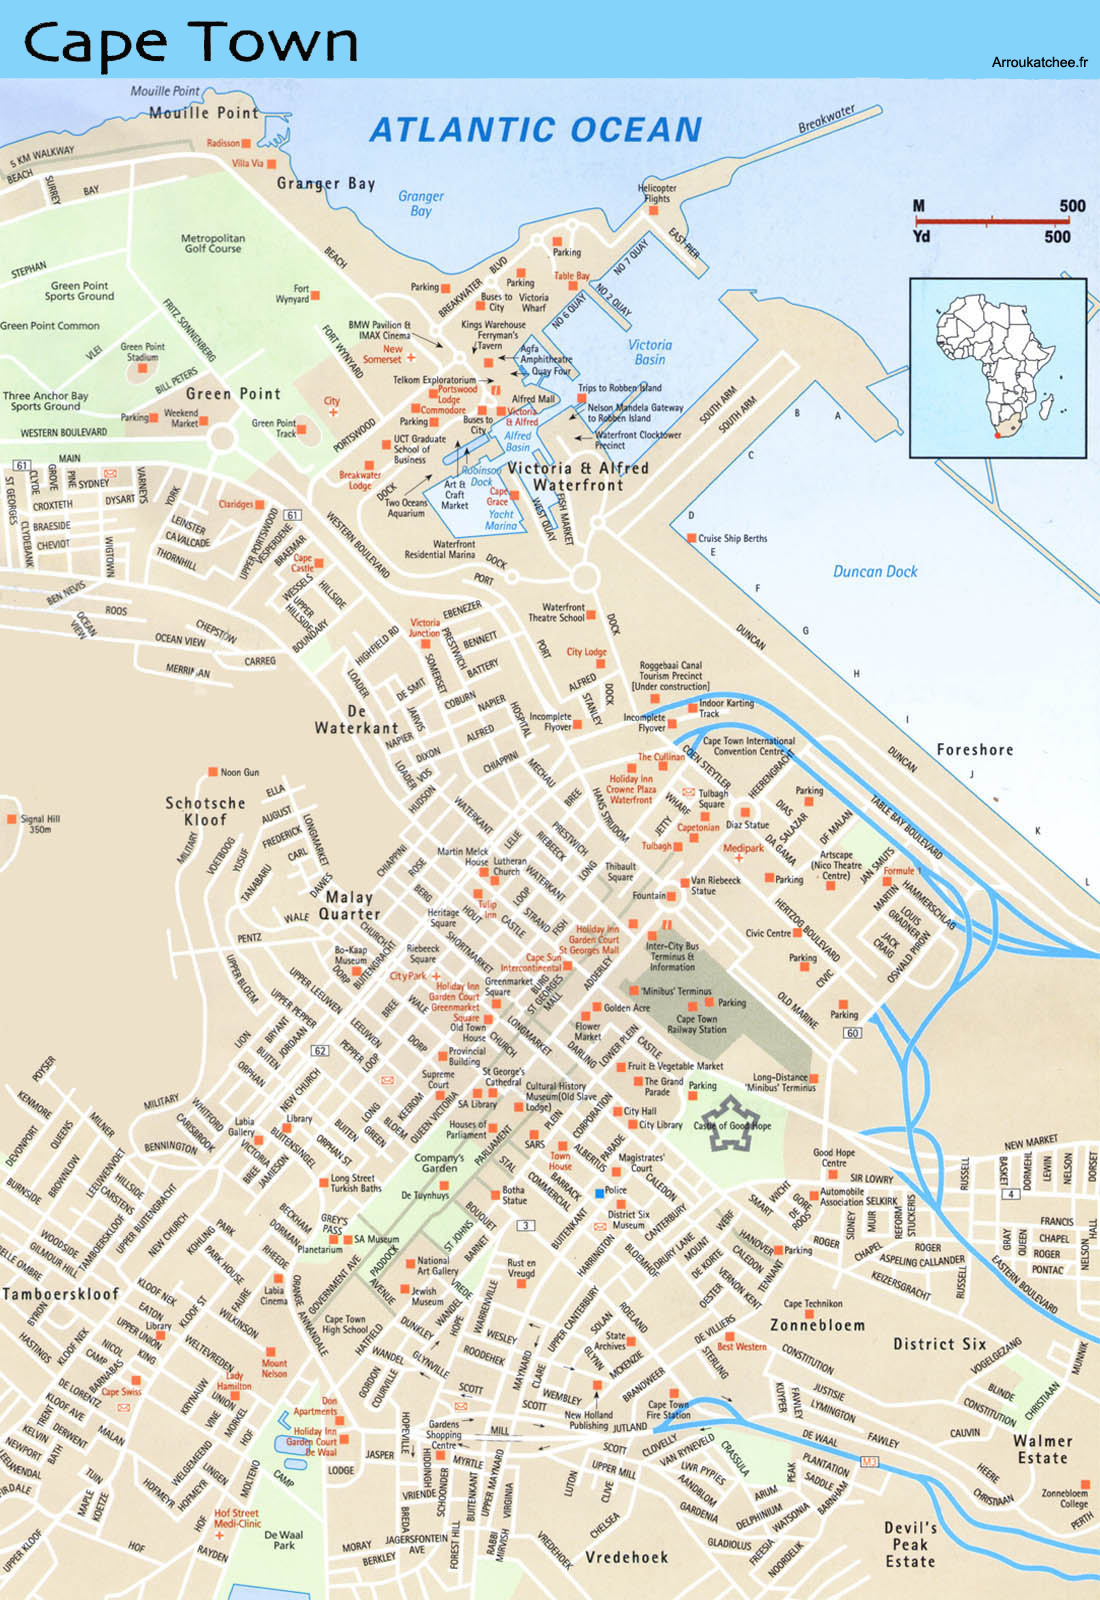 Cape Townstreet map